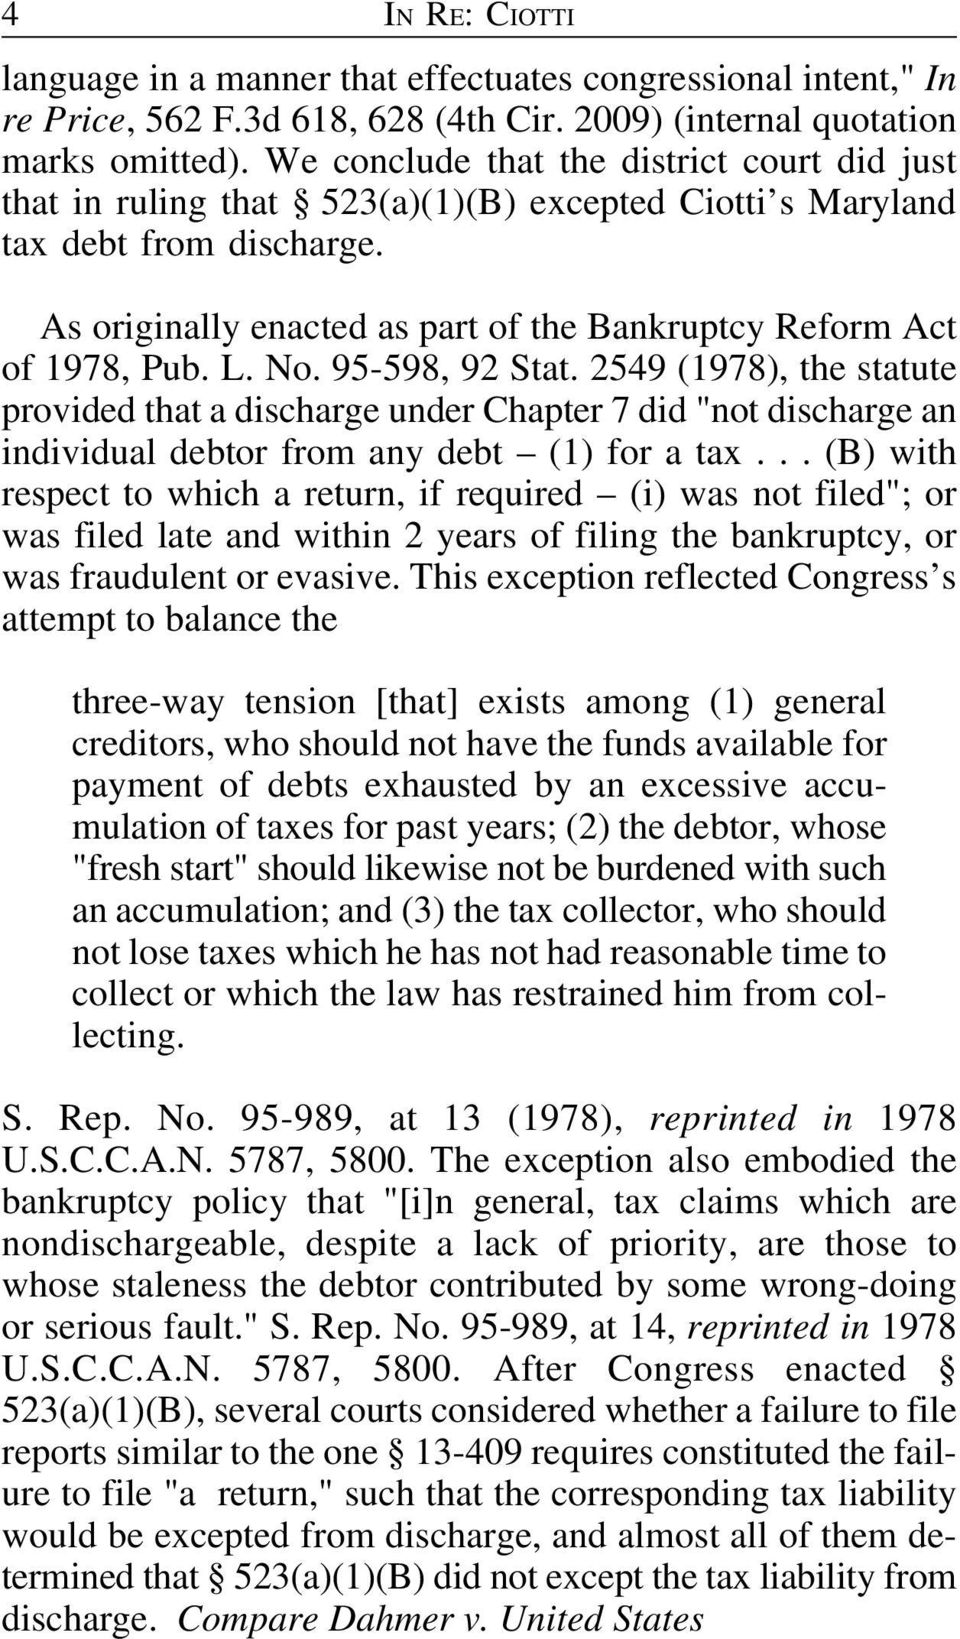 As originally enacted as part of the Bankruptcy Reform Act of 1978, Pub. L. No. 95-598, 92 Stat.